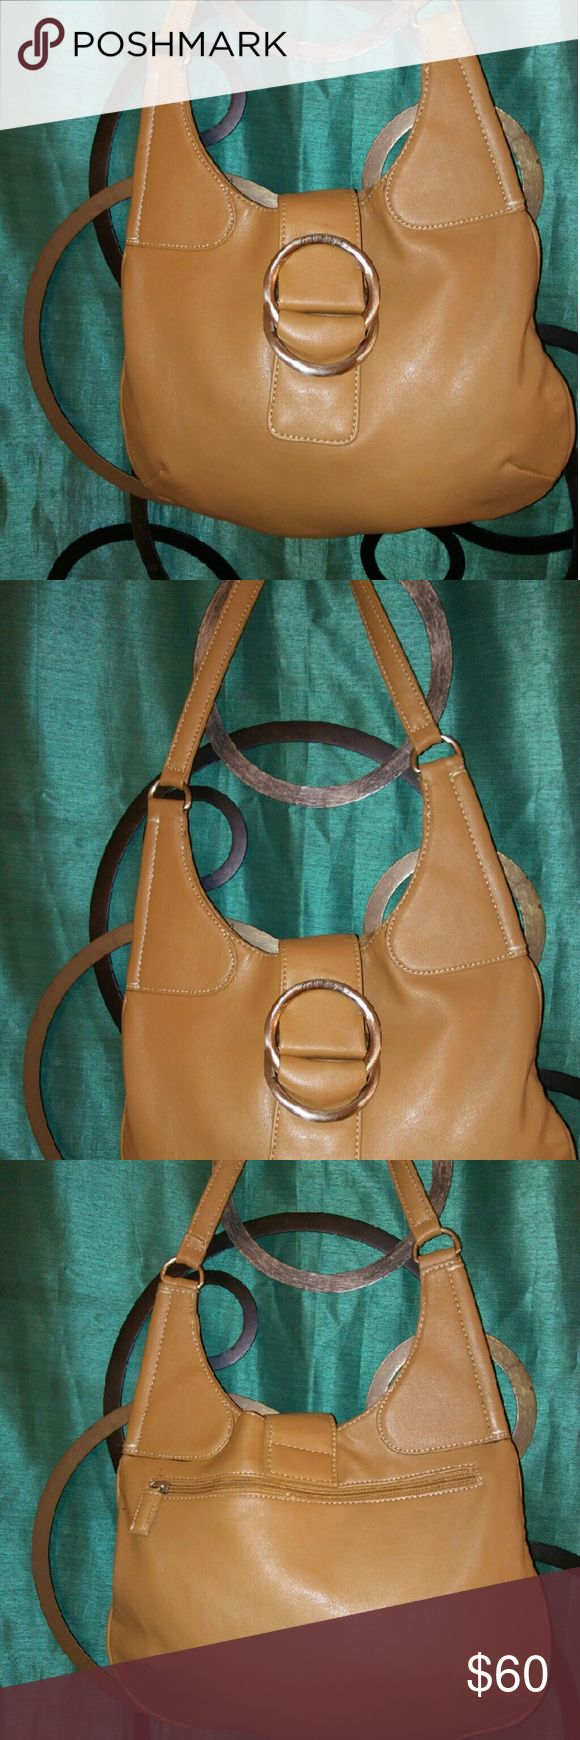 Vintage guess hobo Gorgeous vintage desk tan leather hobo bag absolutely stunning great structure beautifully lined clean comfortable on your shoulder nowear or tear Guess Bags